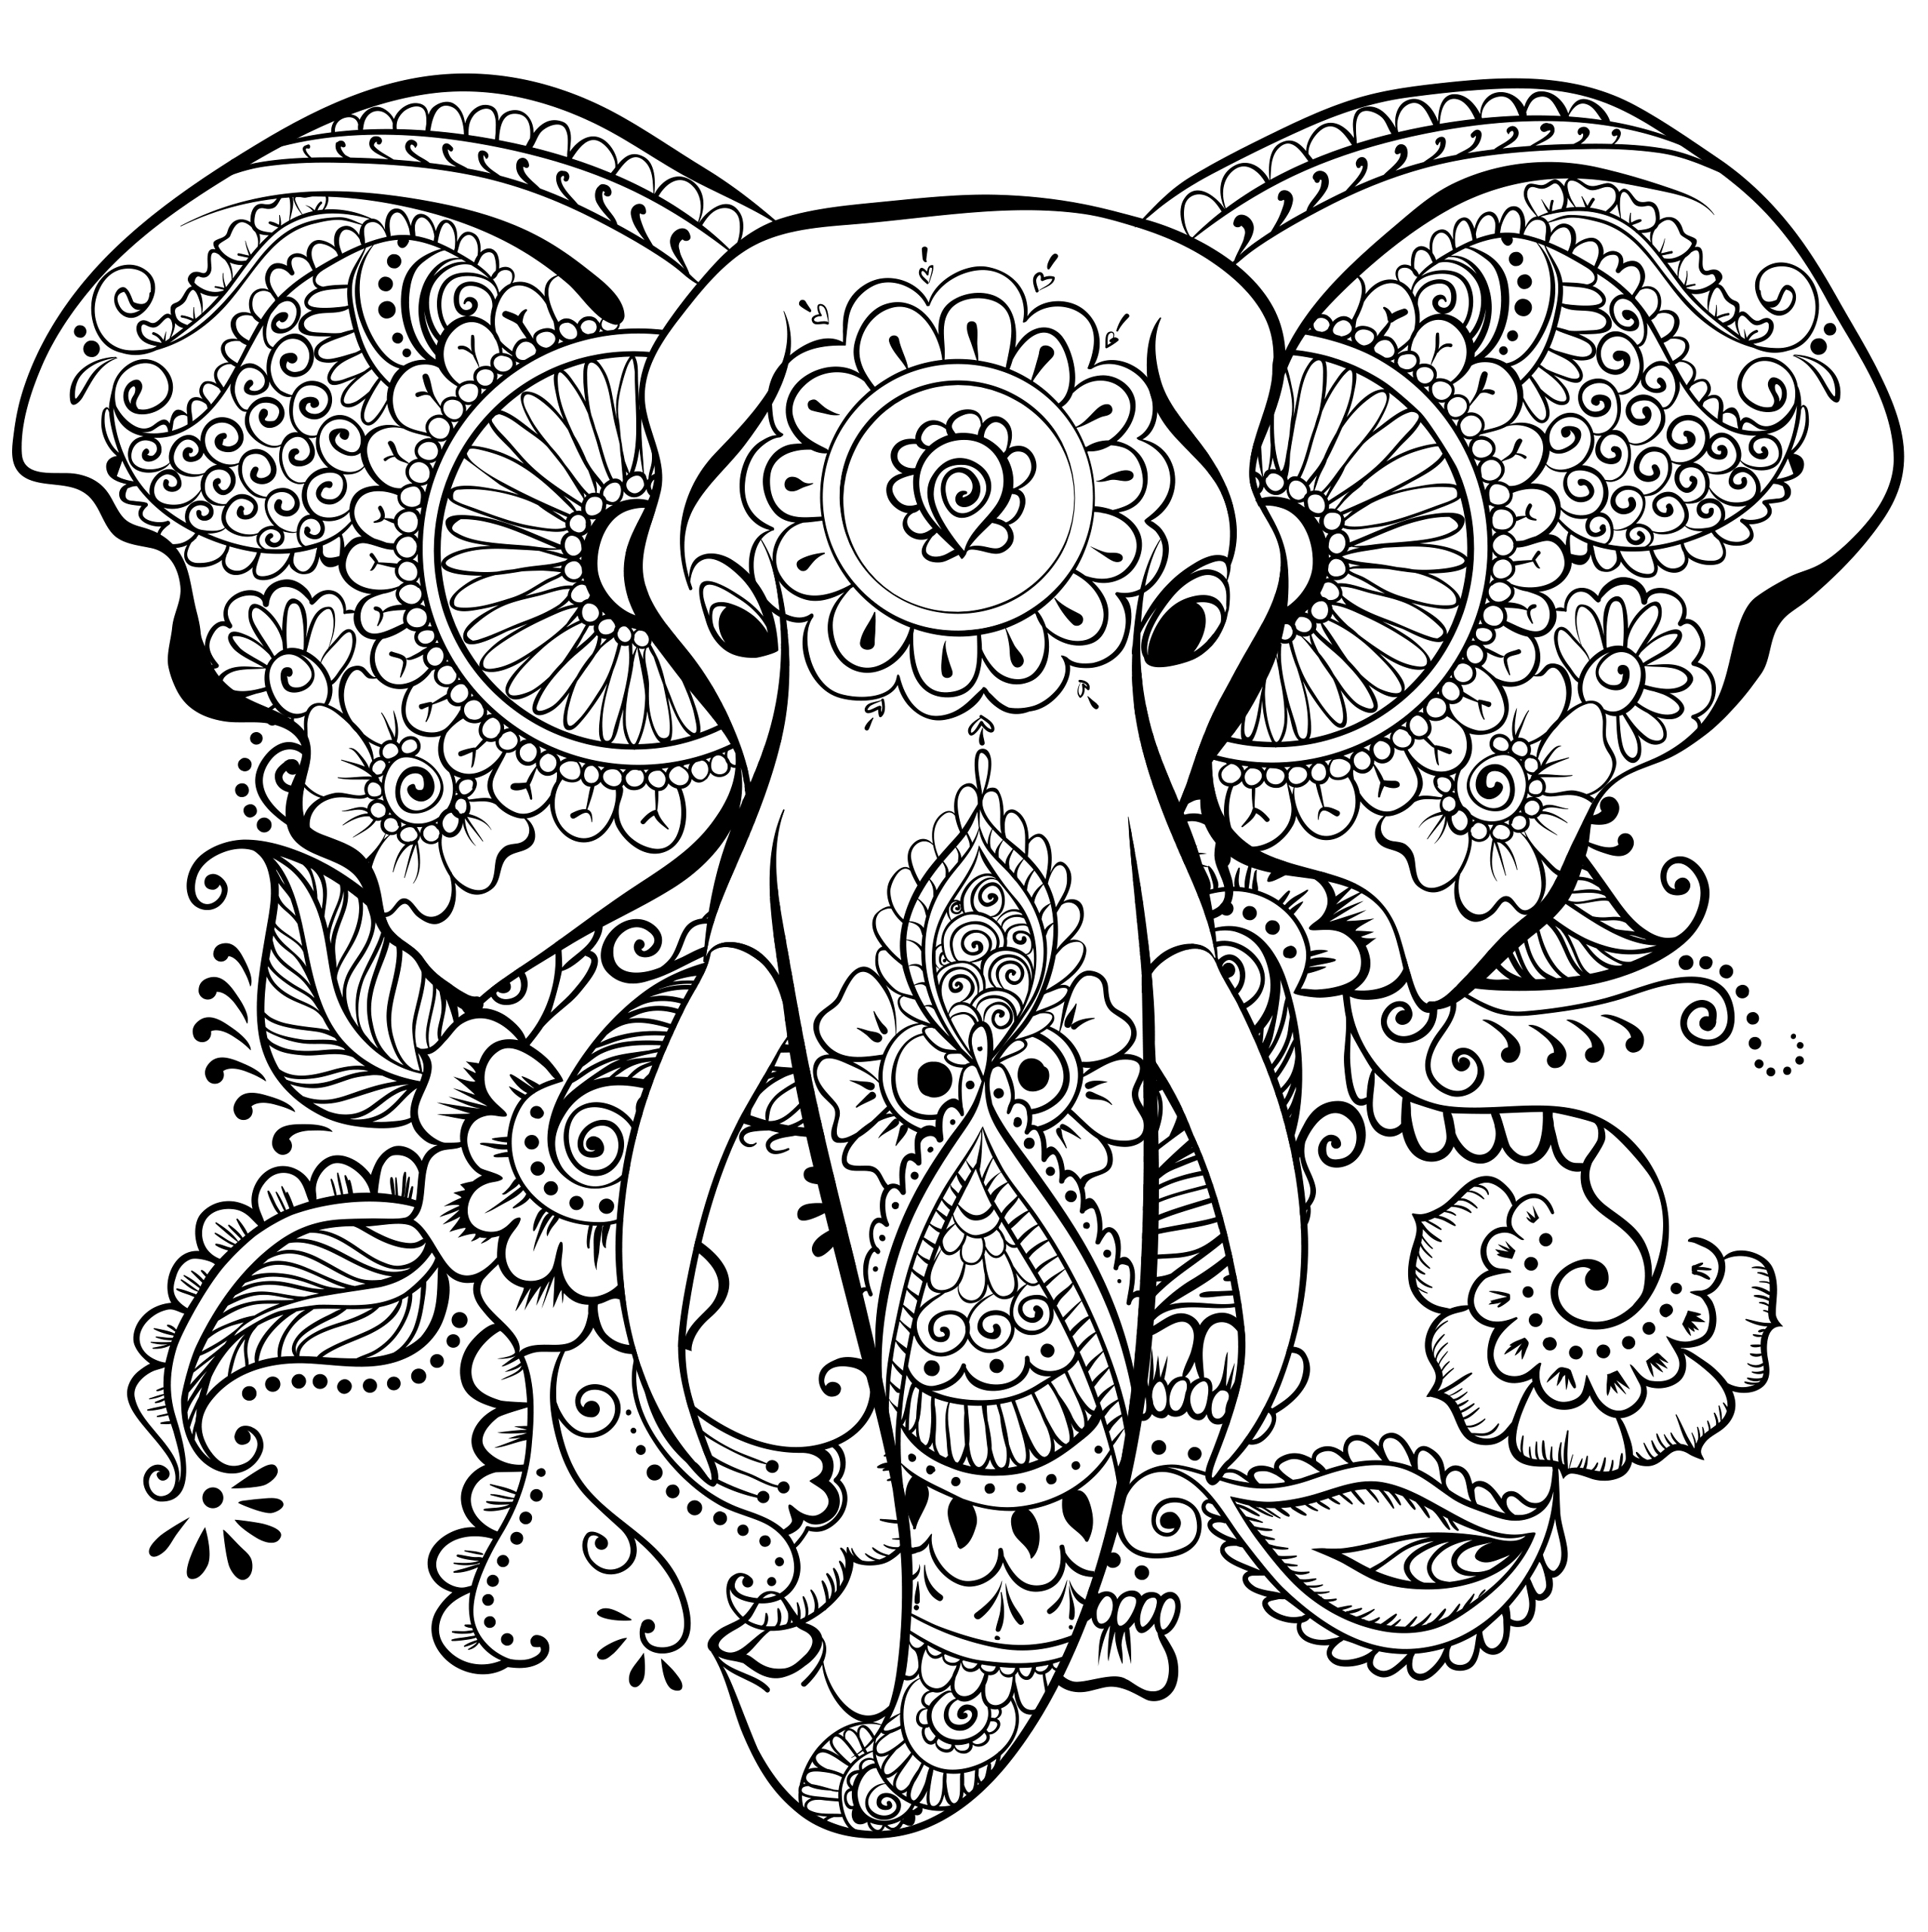 coloring pictures elephant 63 adult coloring pages to nourish your mental visual elephant coloring pictures